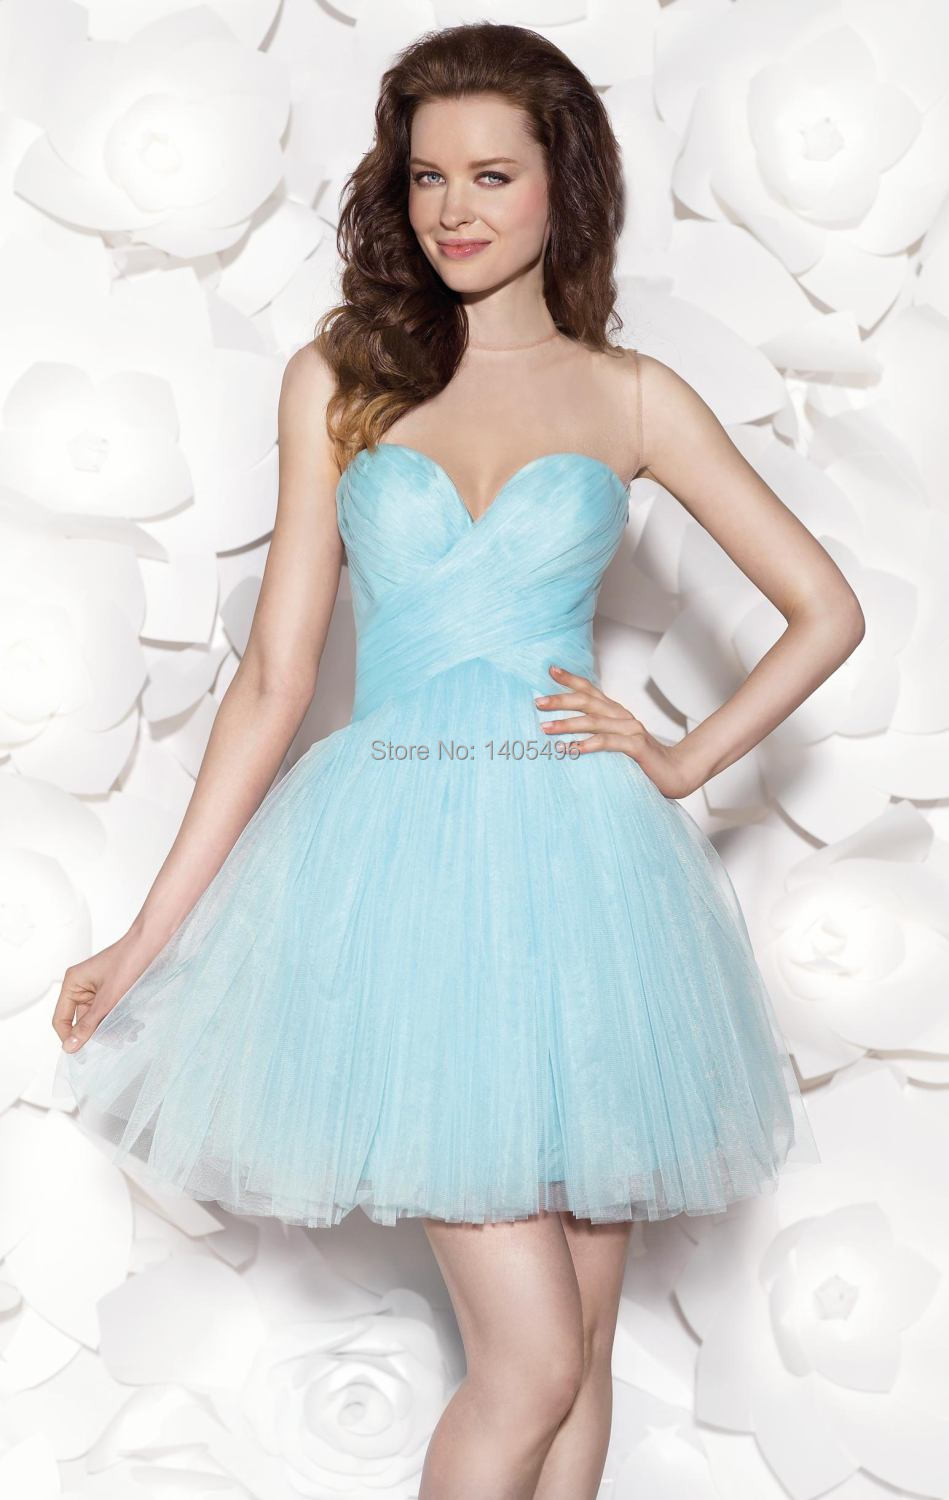 Amazing Party Dresses For Young Women Gallery - All Wedding Dresses ...